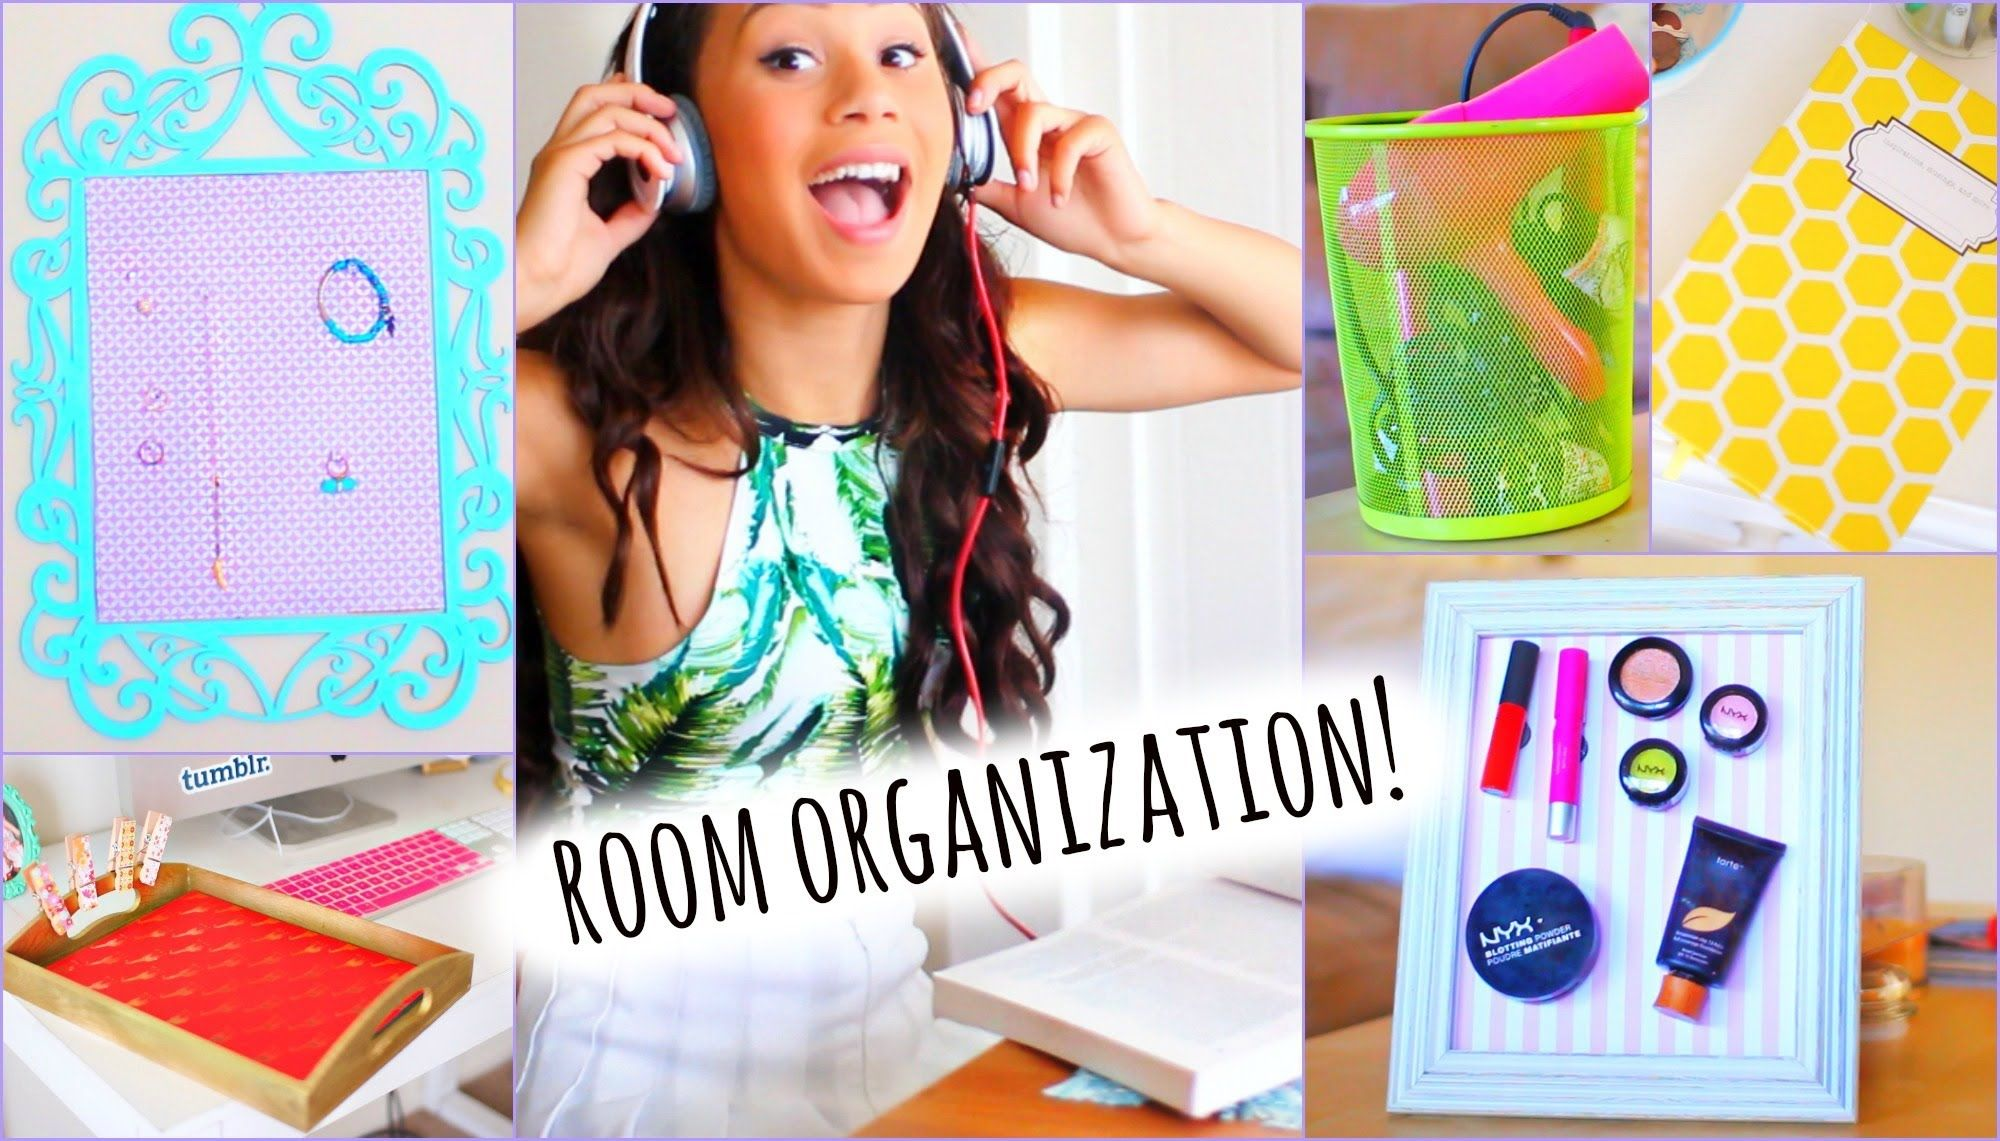 Easy ways to get organized diy room decor tips saw some - Cute ways to organize your bedroom ...